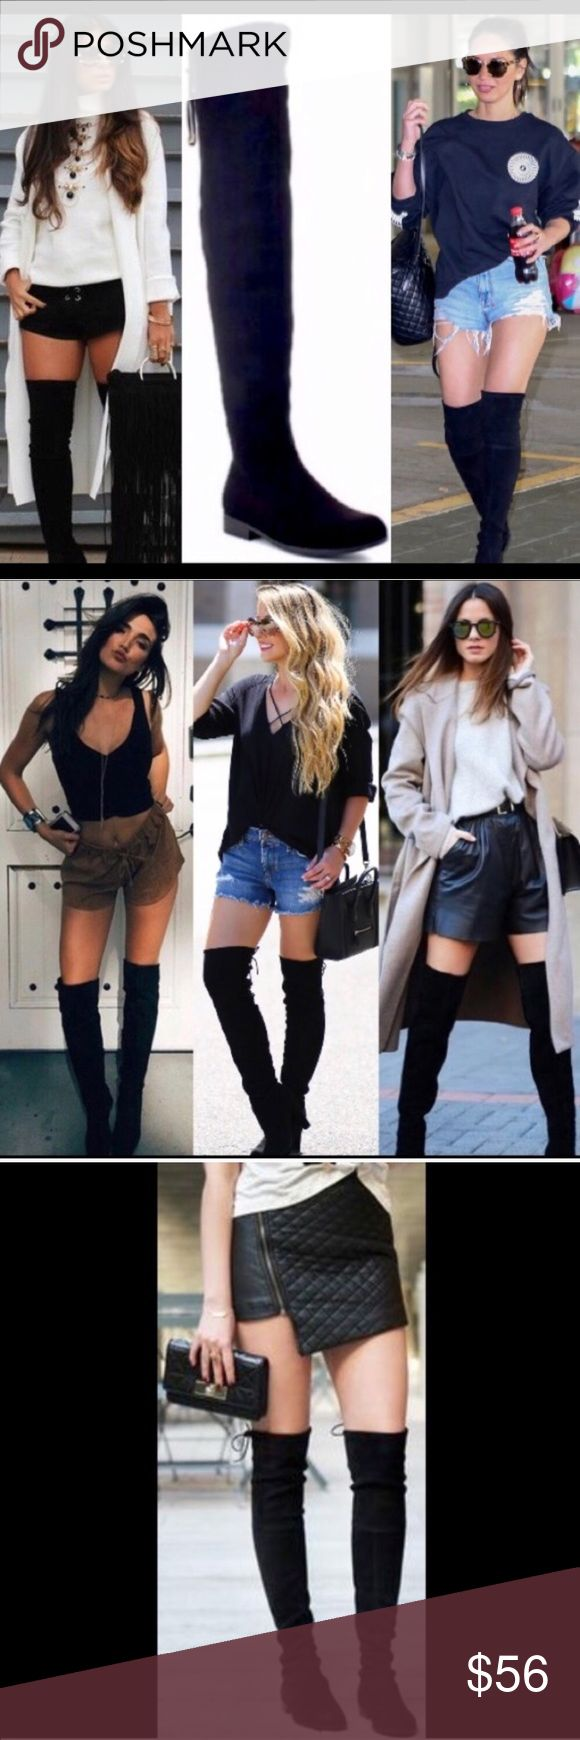 """🌟BEST SELLER🌟Low Heel Black Over the Knee Boots ❤️MANY HAPPY PETITE BUYERS TOO❤️ Drawstring top. Exceptionally soft faux suede.  Inside zipper runs from foot to mid lower leg. Slightly rounded toe. Fabric has give to it. Fits true to size. Approximate measurements, leg opening 17"""", calf 15"""", 25"""" shaft height. Center image of covershot and image 4 of actual boots. As with all merchandise, seller not responsible for fit nor comfort. Brand new retail. No trades, no off App transactions or…"""